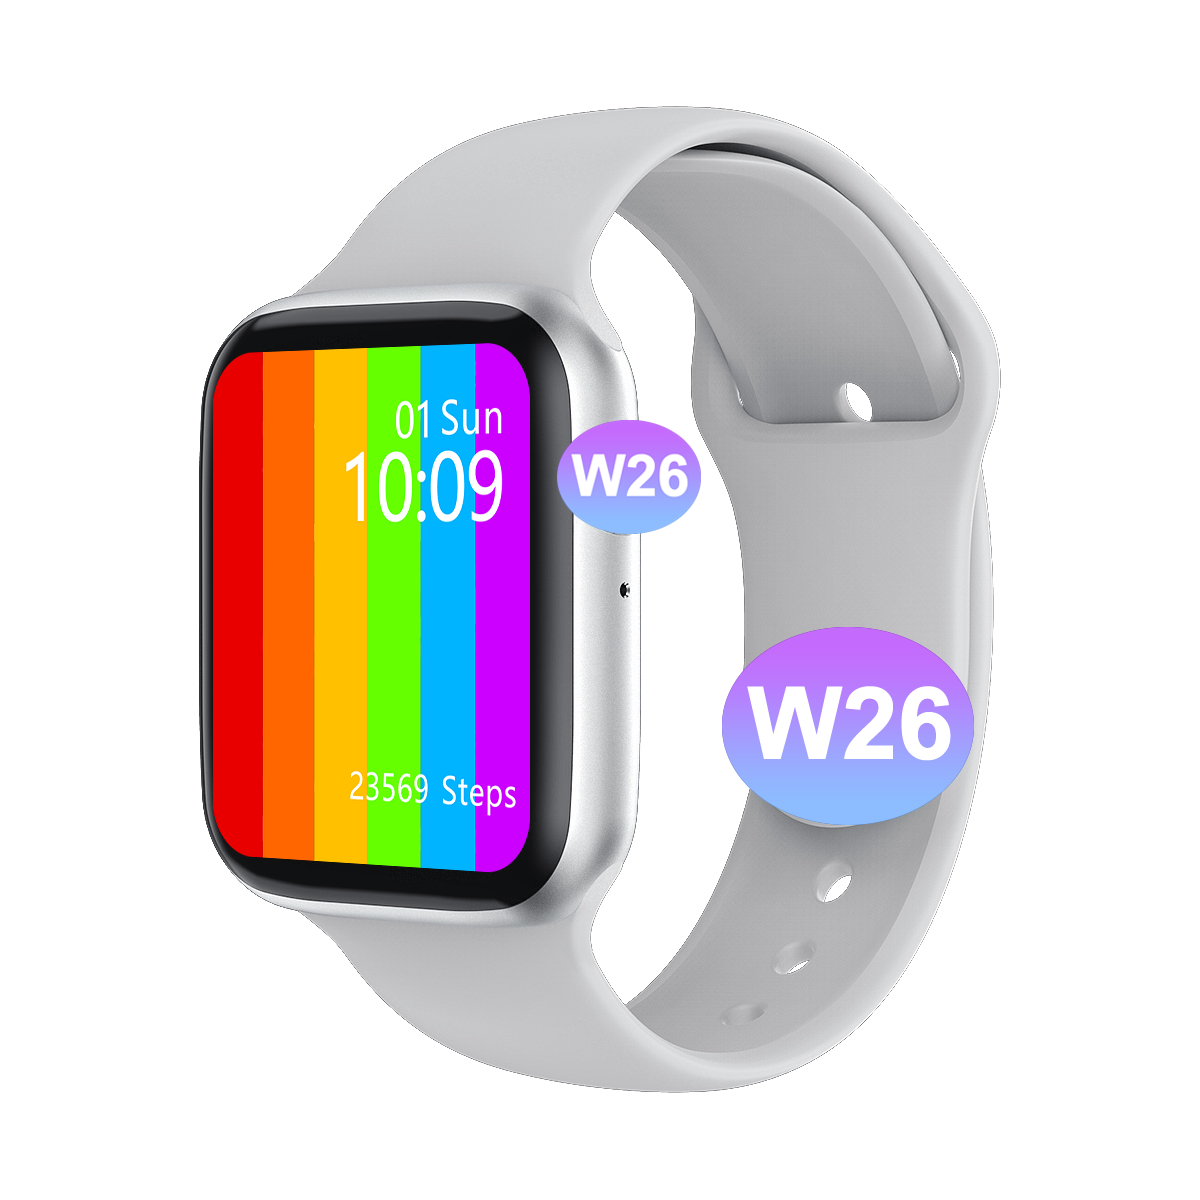 Oem Custom Smartwatch W26 <span class=keywords><strong>Serie</strong></span> 6 Smart Horloge Ip67 Waterdichte W26 Iwo Smart Horloge